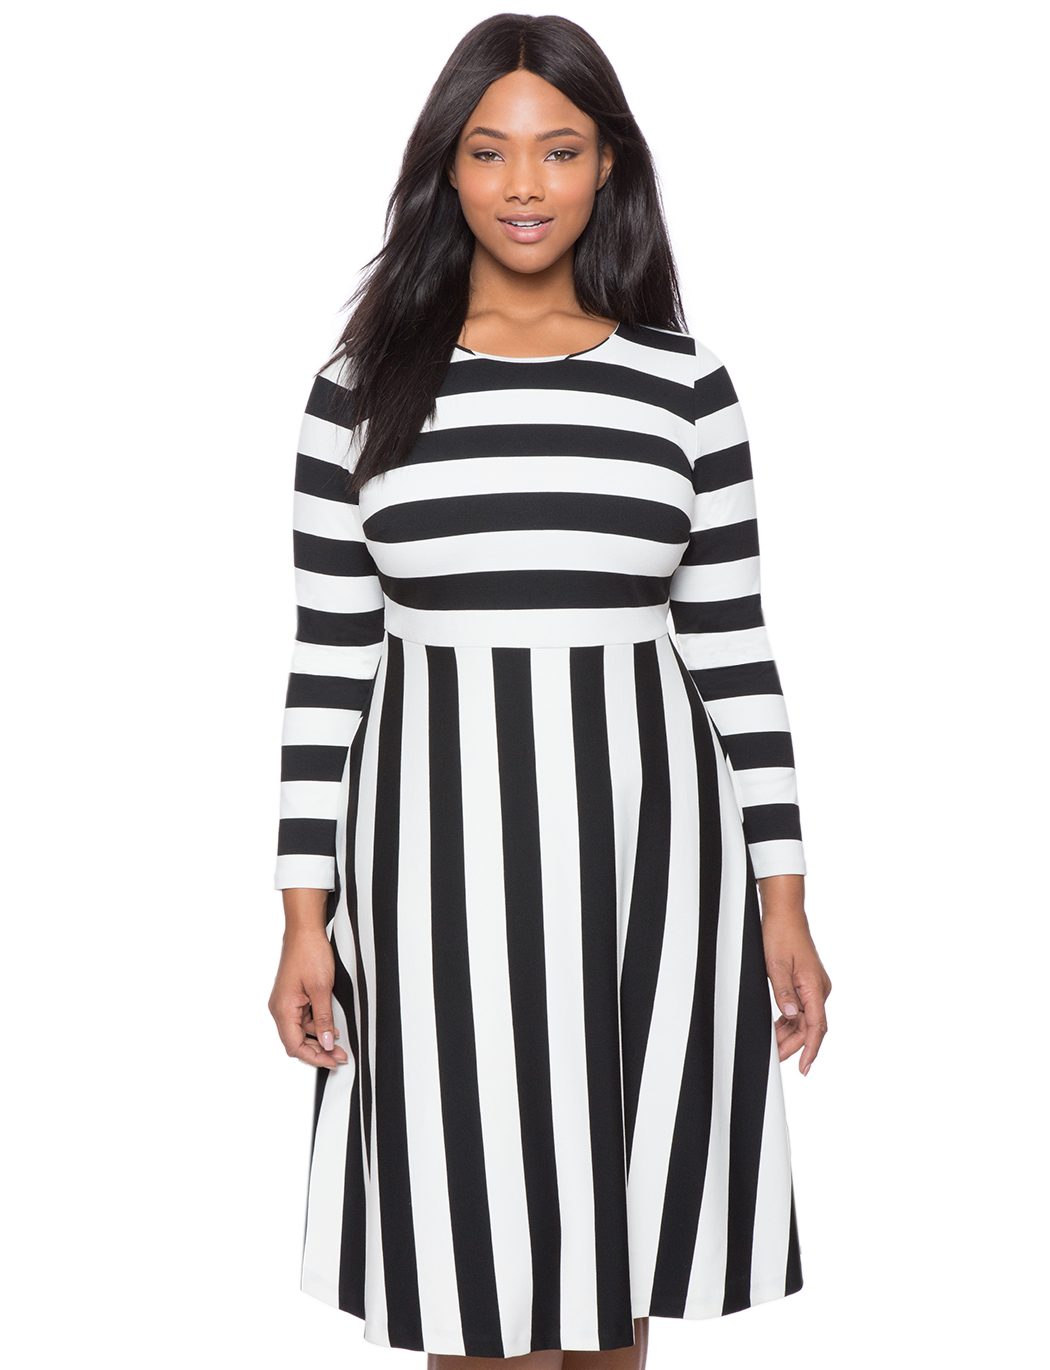 Opposing Stripes Fit and Flare Dress | Women\'s Plus Size Dresses | ELOQUII